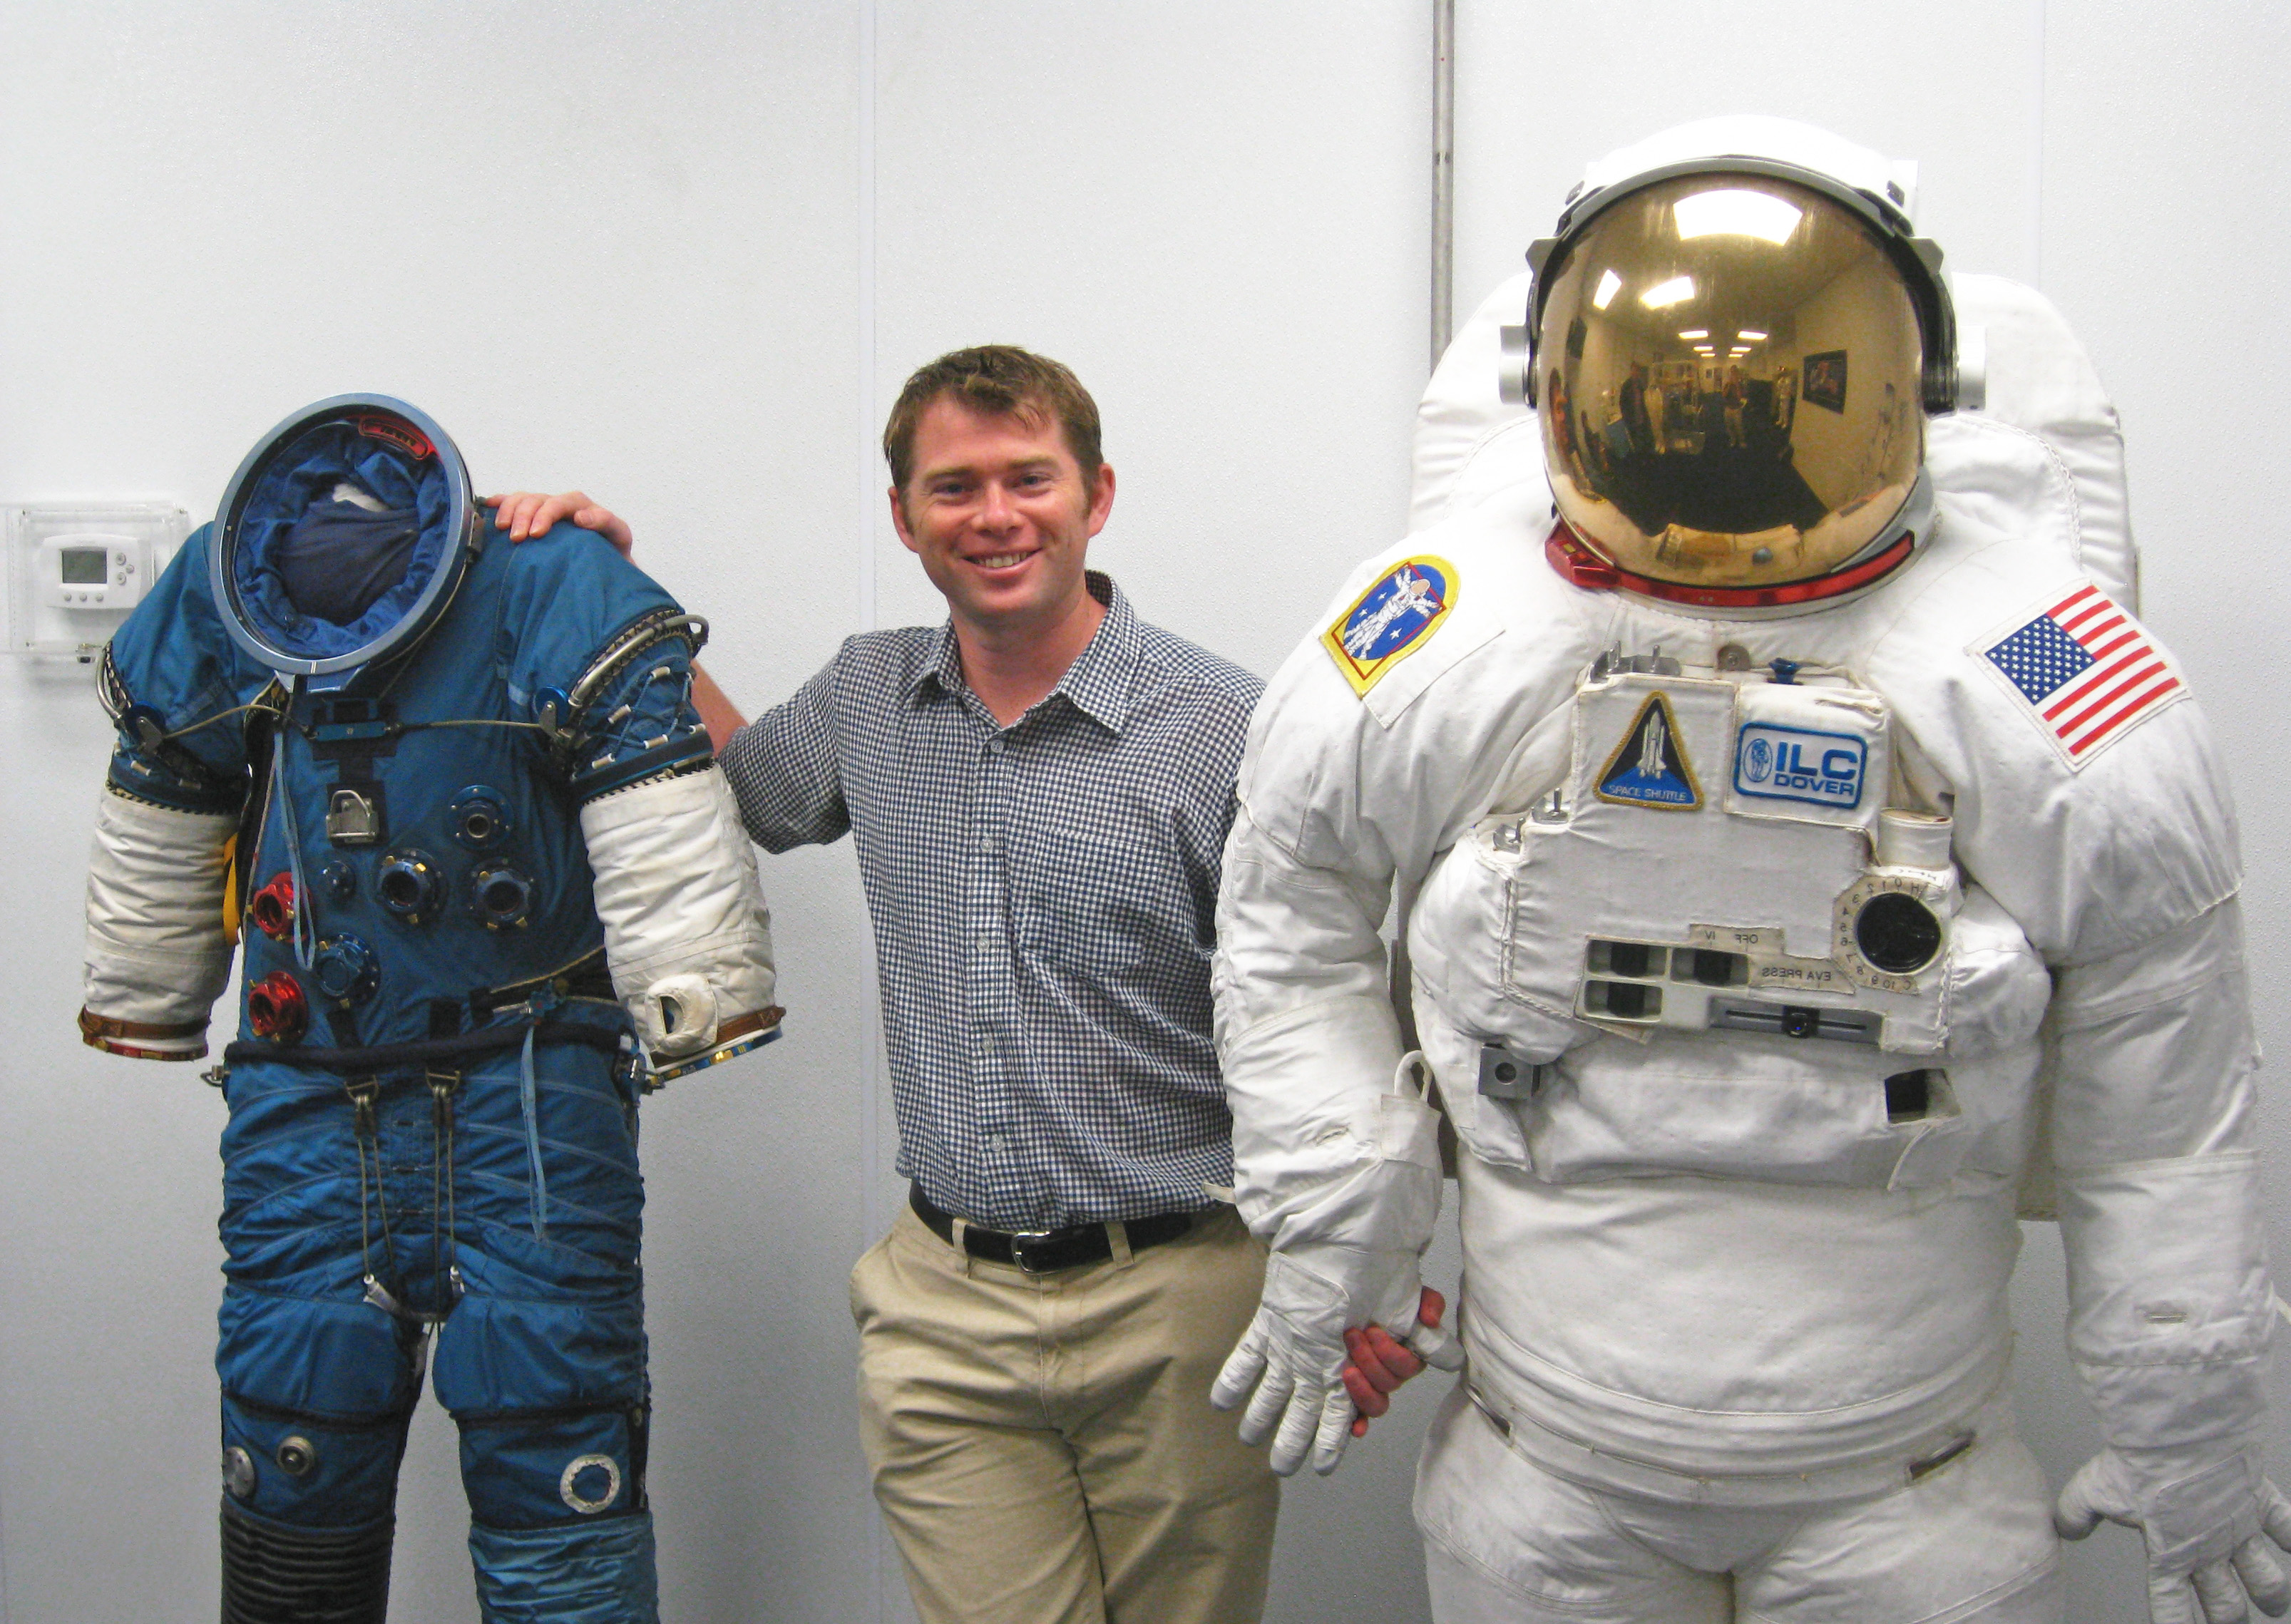 RMIT alumnus and Chief Engineer at Human Aerospace, Dr James Waldie, poses with NASA Extravehicular Activity suits used for spacewalking.